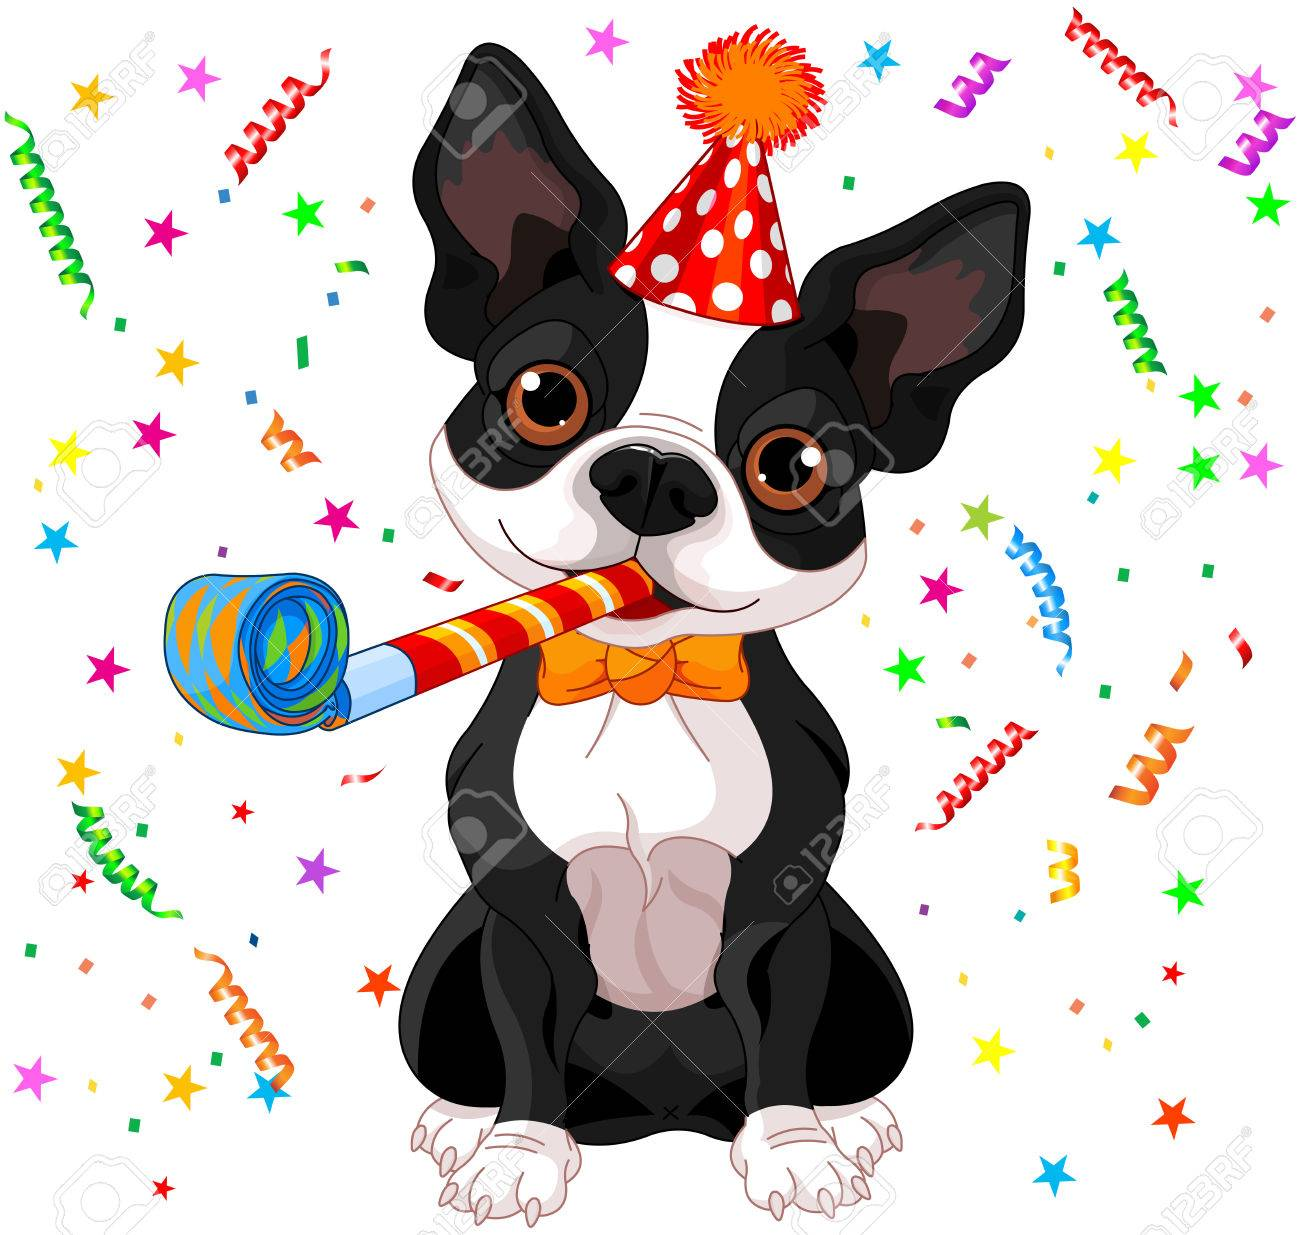 Le Thundershirt : le manteau qui calme - Page 24 35588778-illustration-of-cute-boston-terrier-celebrating